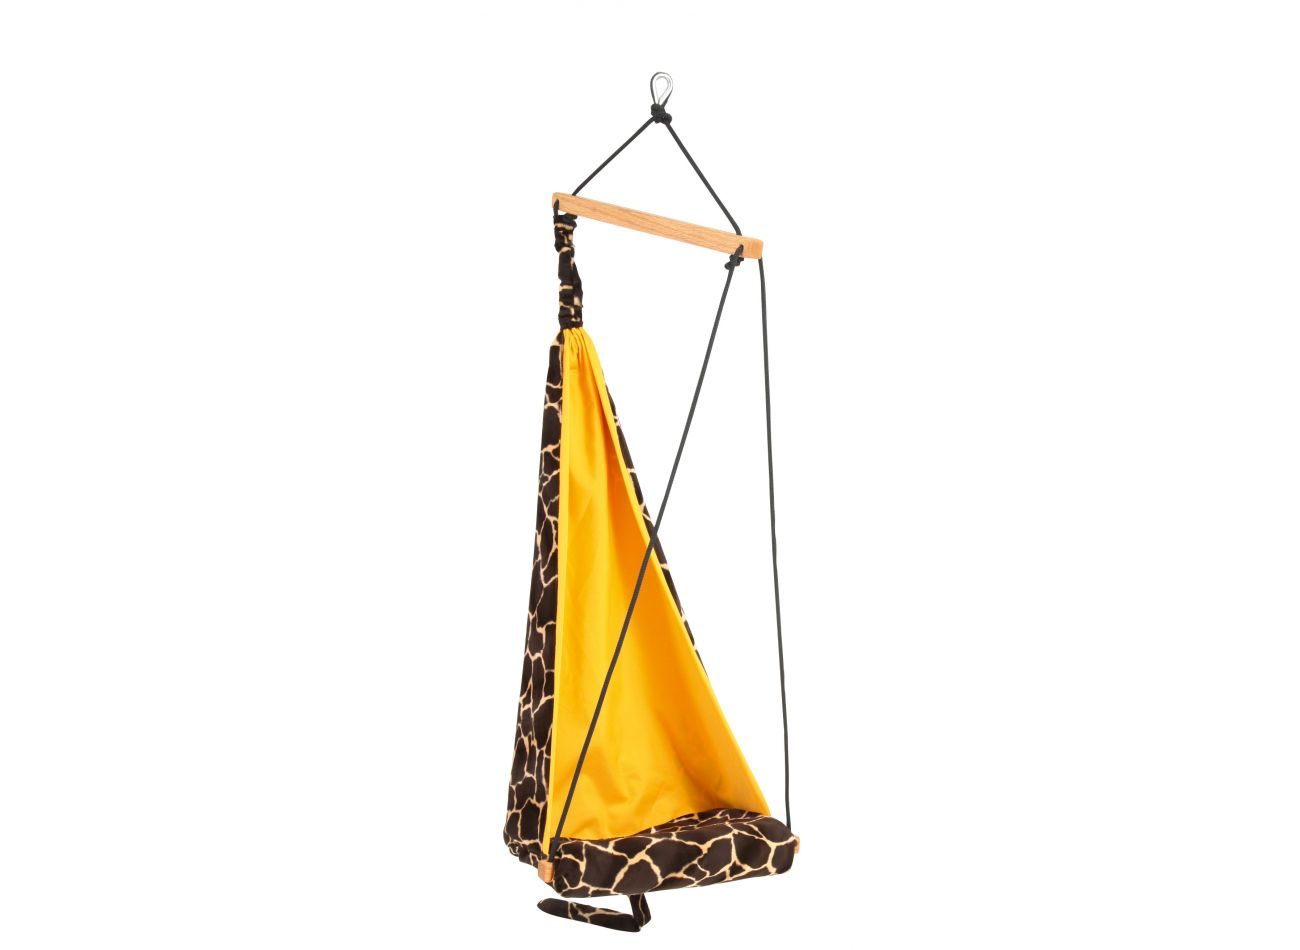 Kinderhangstoel Hang Mini Giraffe